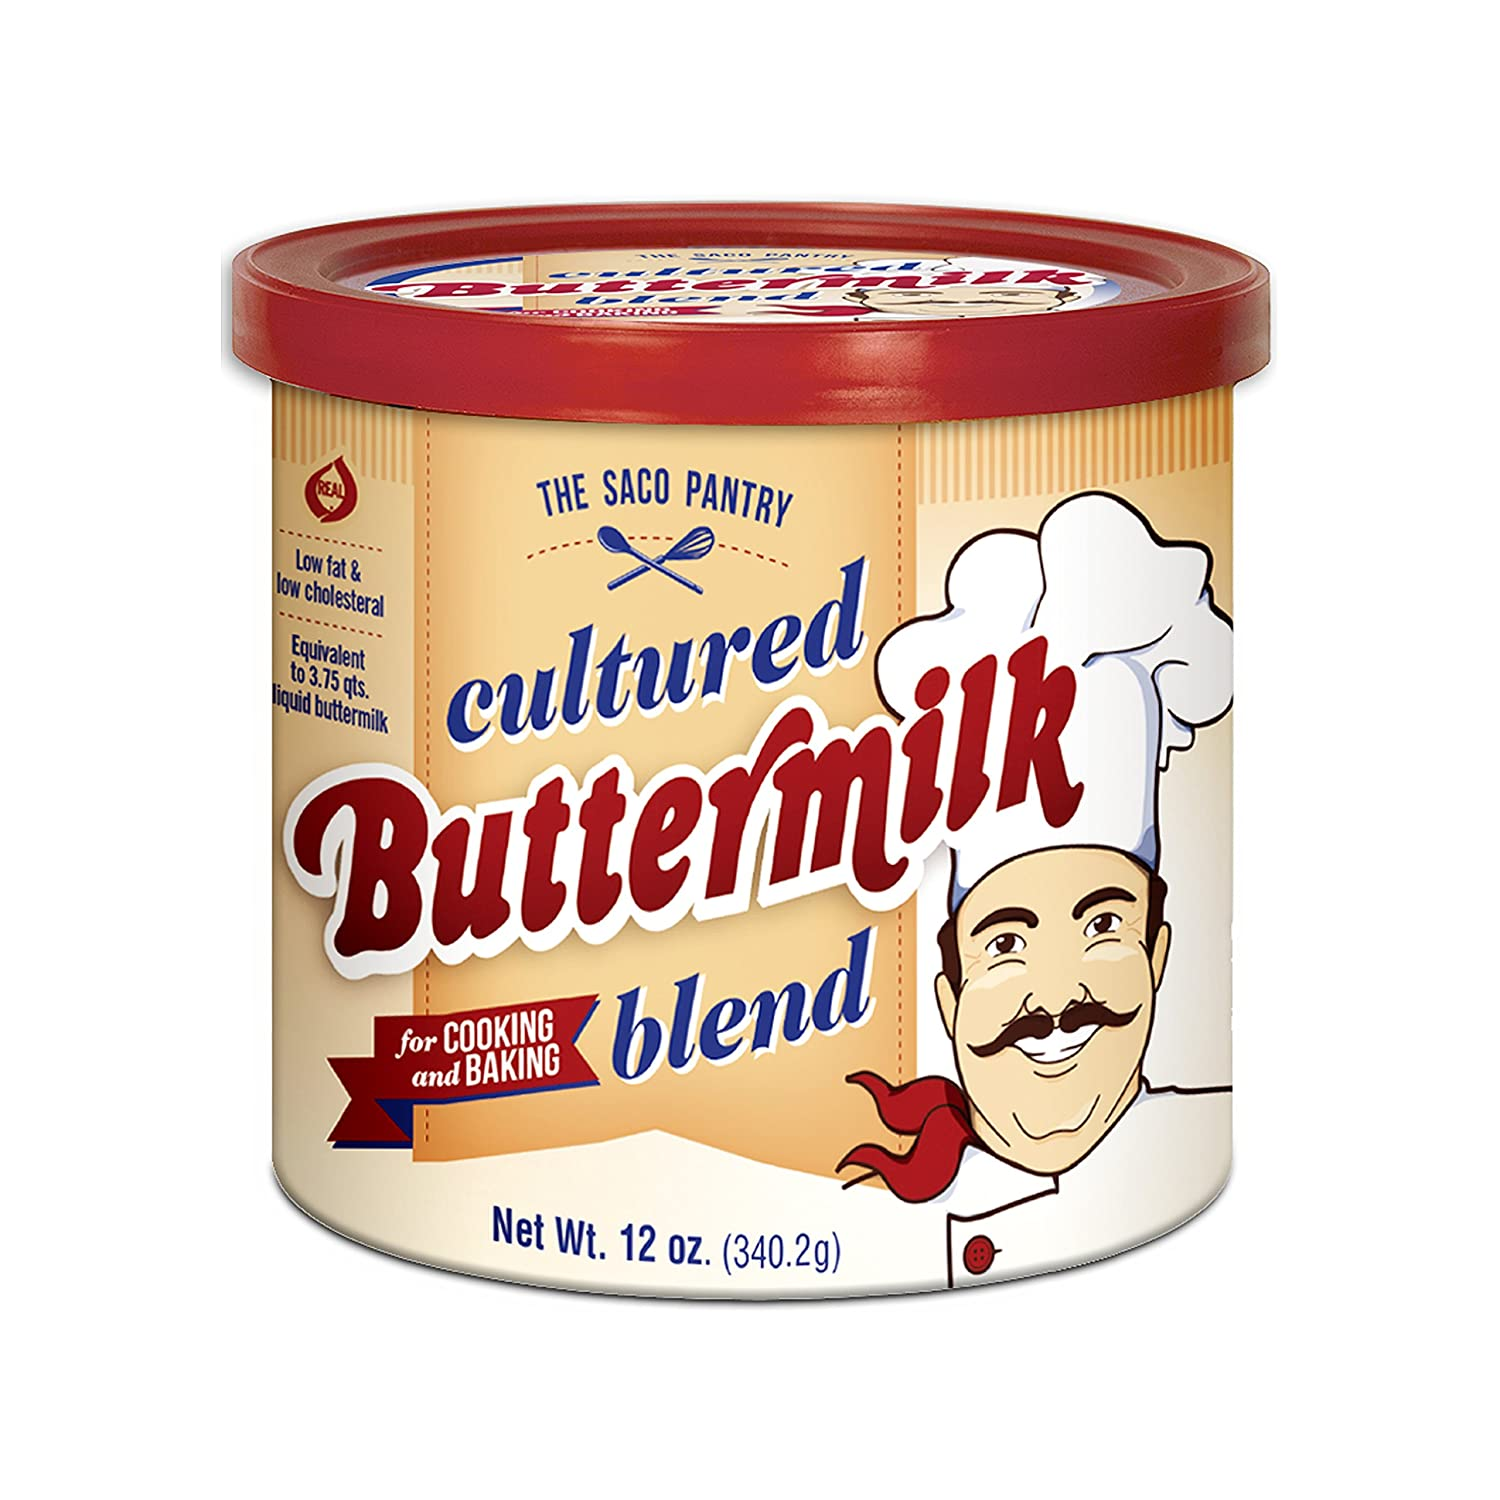 Saco Cultured Buttermilk for Cooking and Baking, Powdered